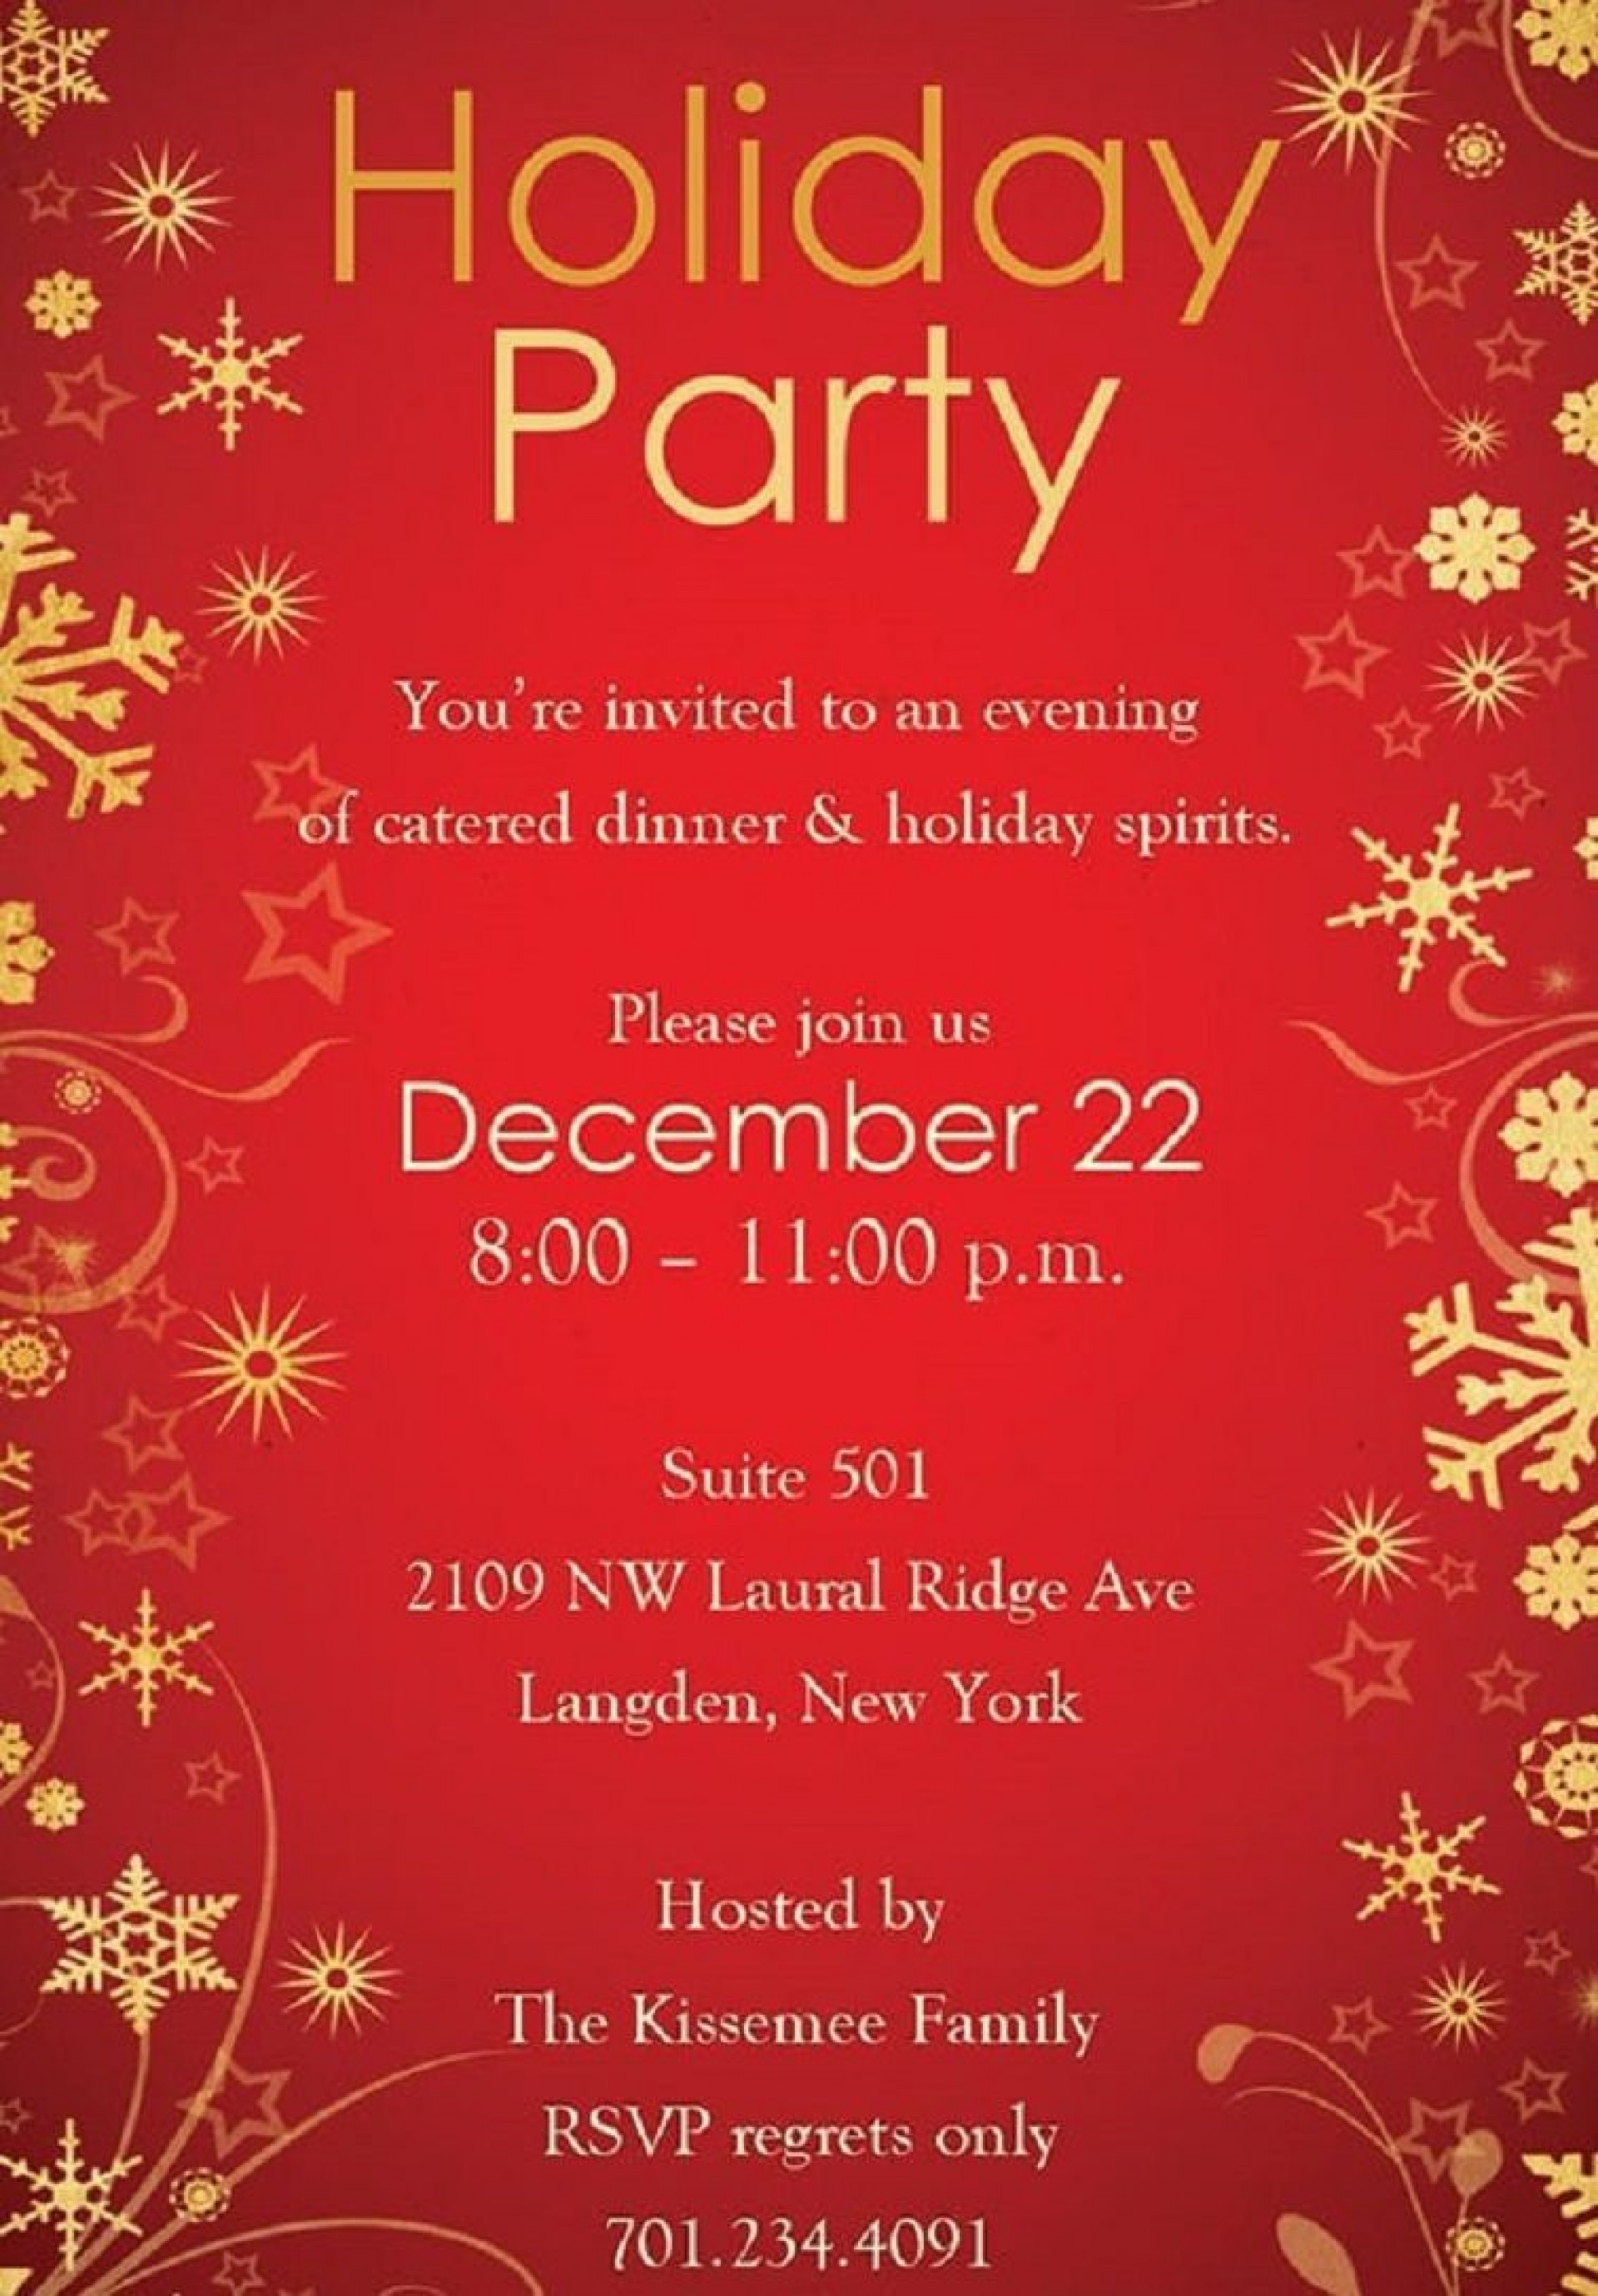 001 Unusual Holiday Party Invite Template Word Photo  Cocktail Invitation Wording Sample Microsoft Christma1920